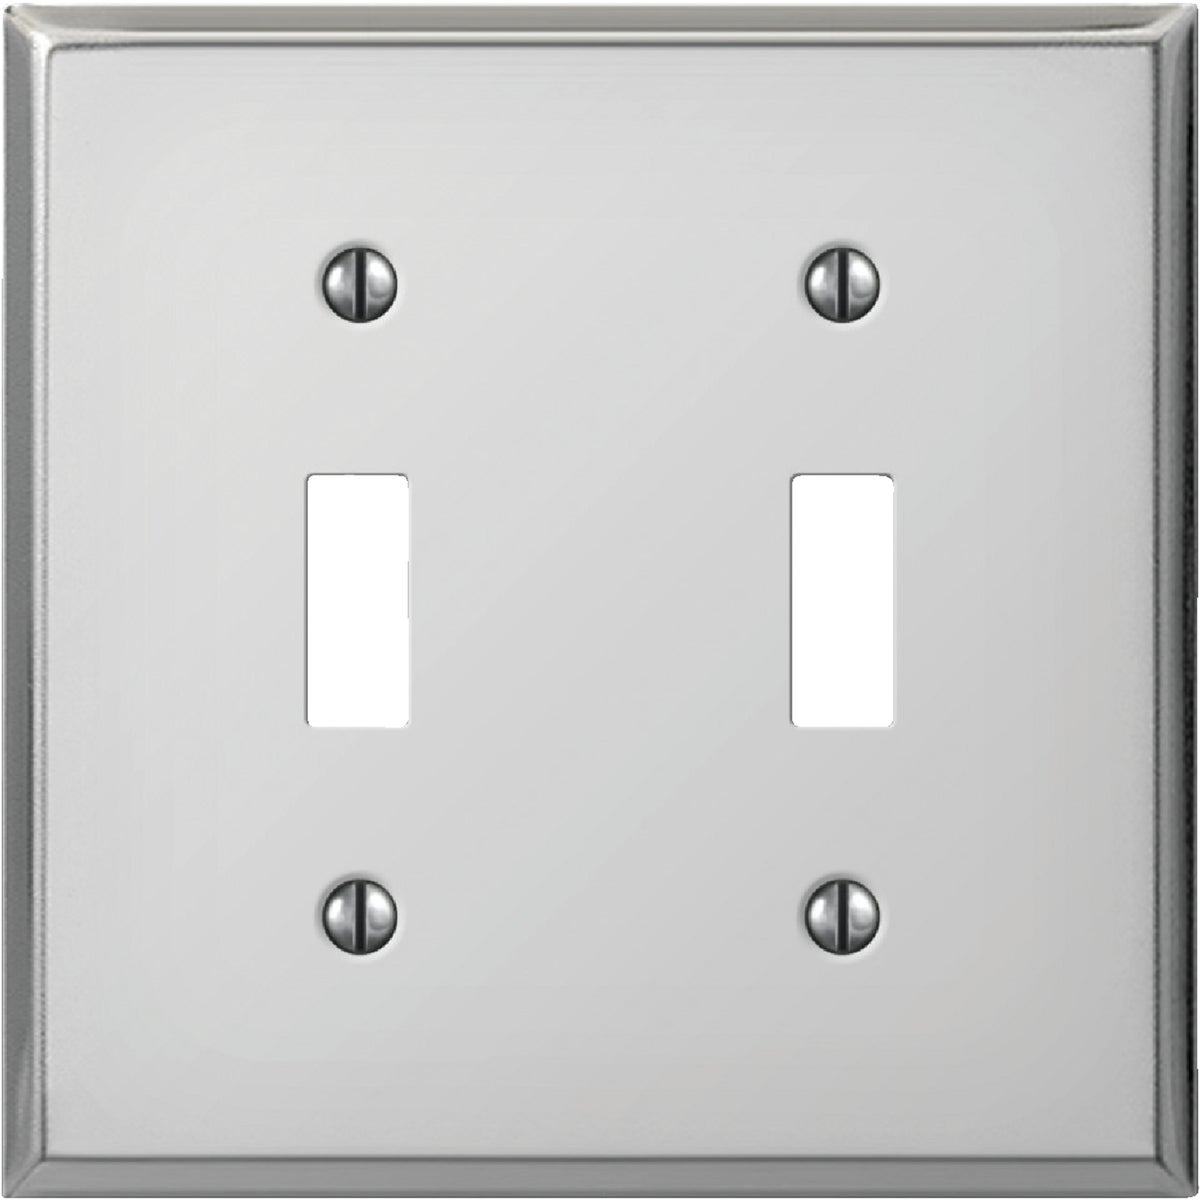 CHR DBL SWTCH WALL PLATE - 8CS102 by Jackson Deerfield Mf